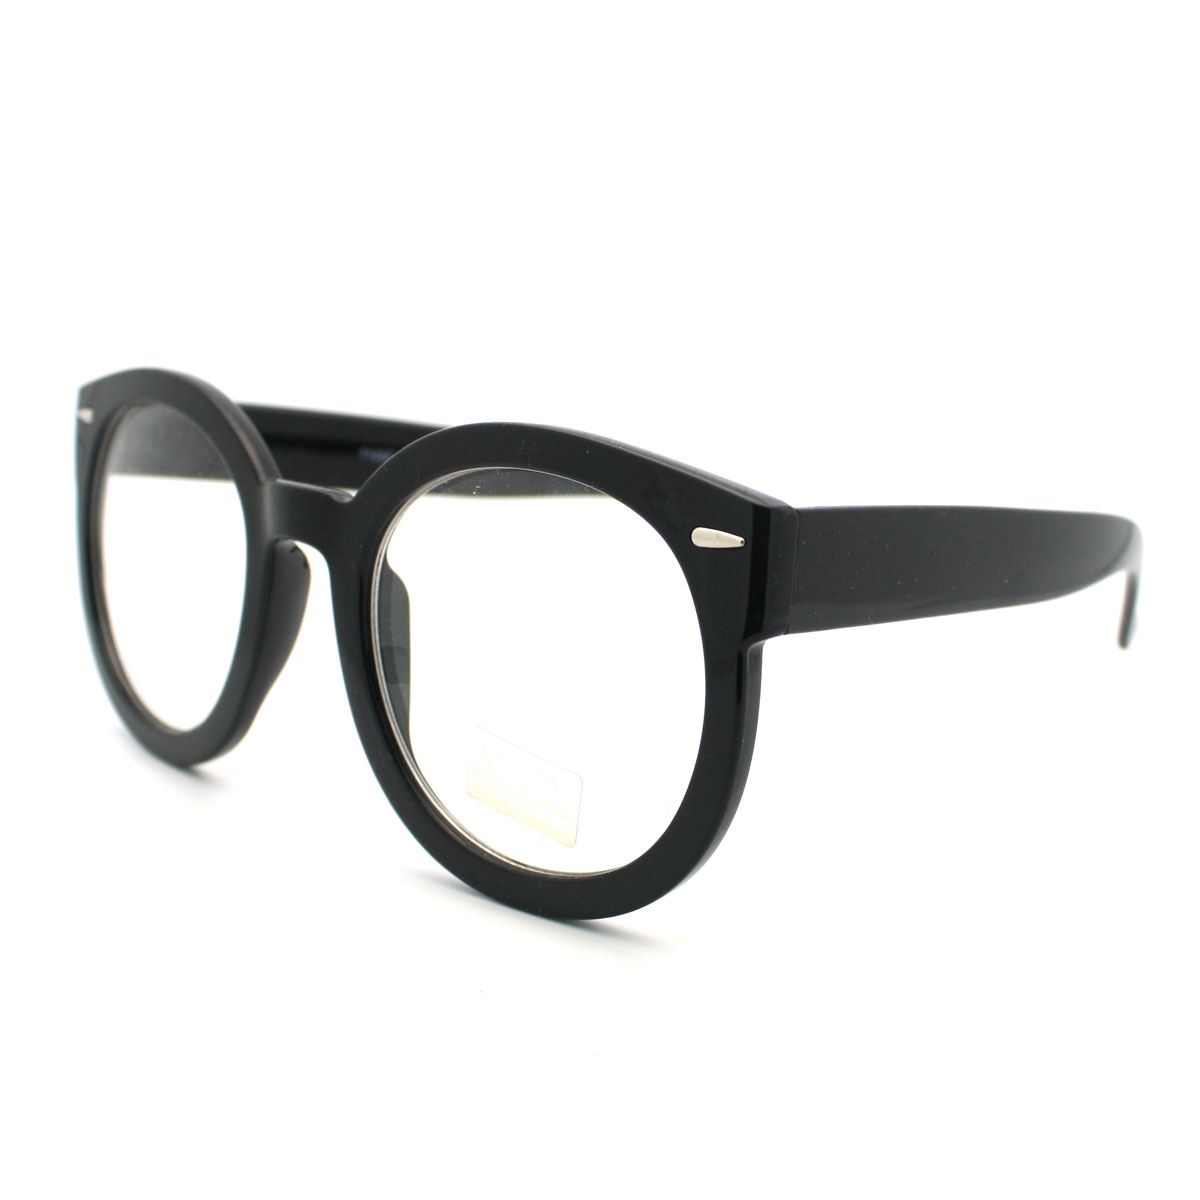 Thick Black Frame Prescription Glasses : Black Oversized Round Thick Horn Rim Clear Lens Fashion ...